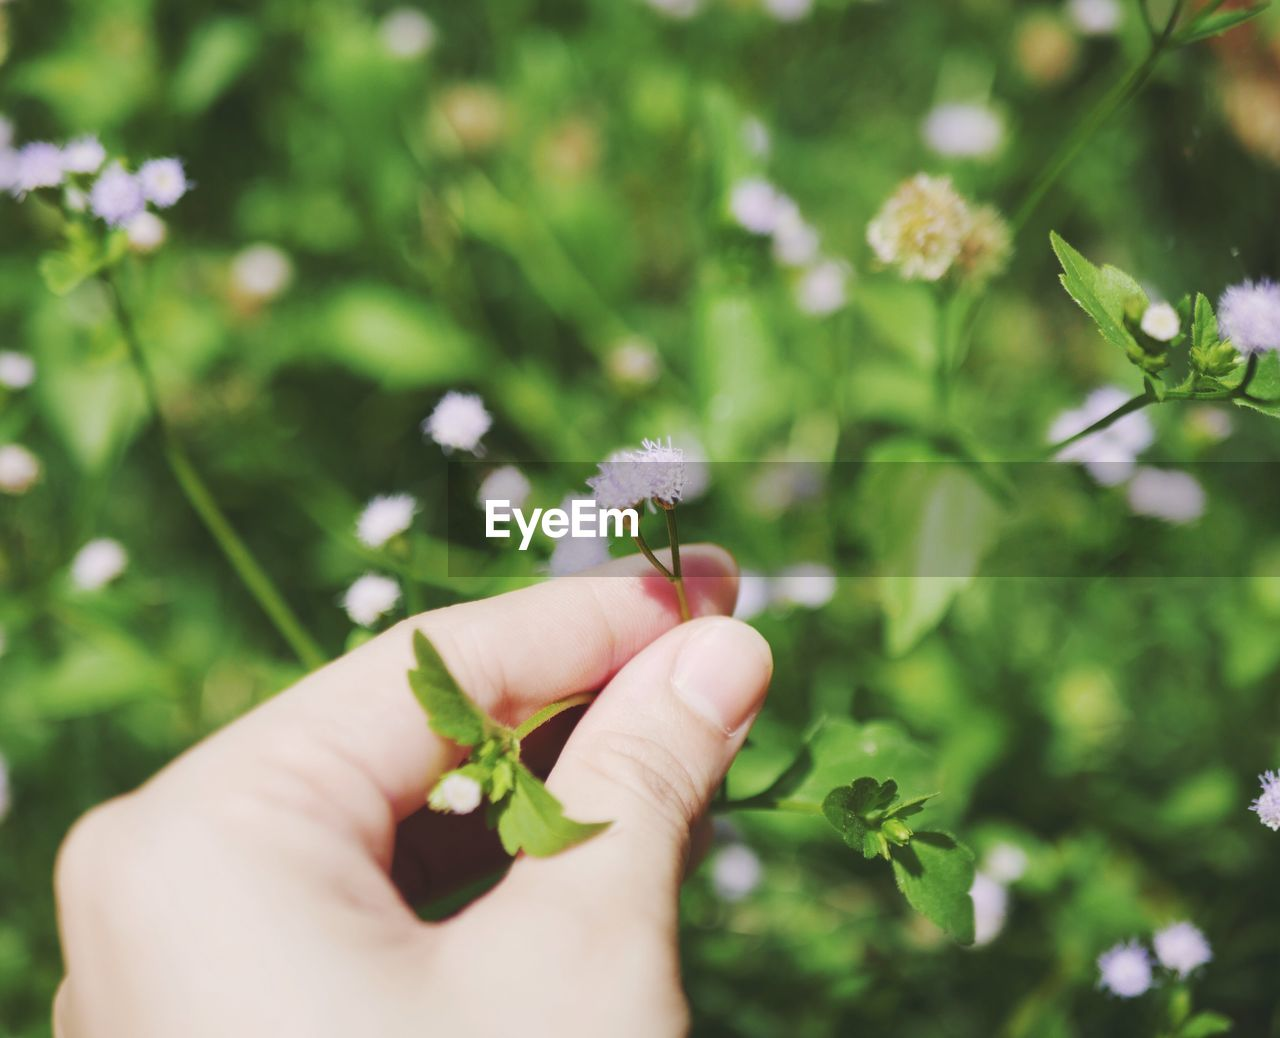 human hand, hand, plant, flower, flowering plant, holding, human body part, freshness, one person, vulnerability, fragility, focus on foreground, nature, day, body part, close-up, finger, beauty in nature, human finger, outdoors, flower head, small, human limb